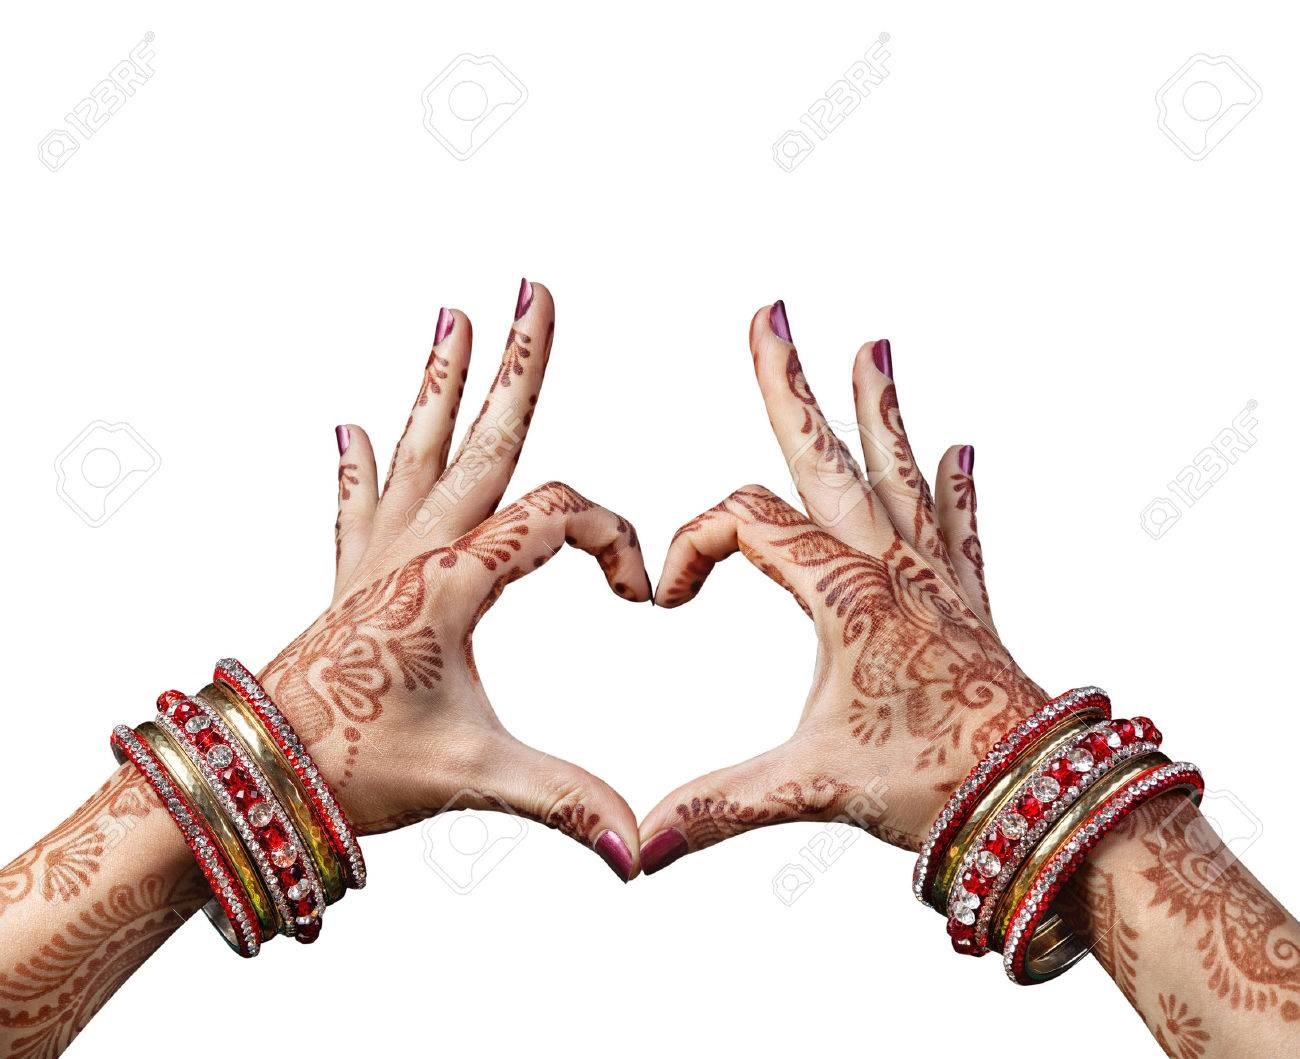 Woman hands with henna doing heart gesture isolated on white background with clipping path Stock Photo - 40010811